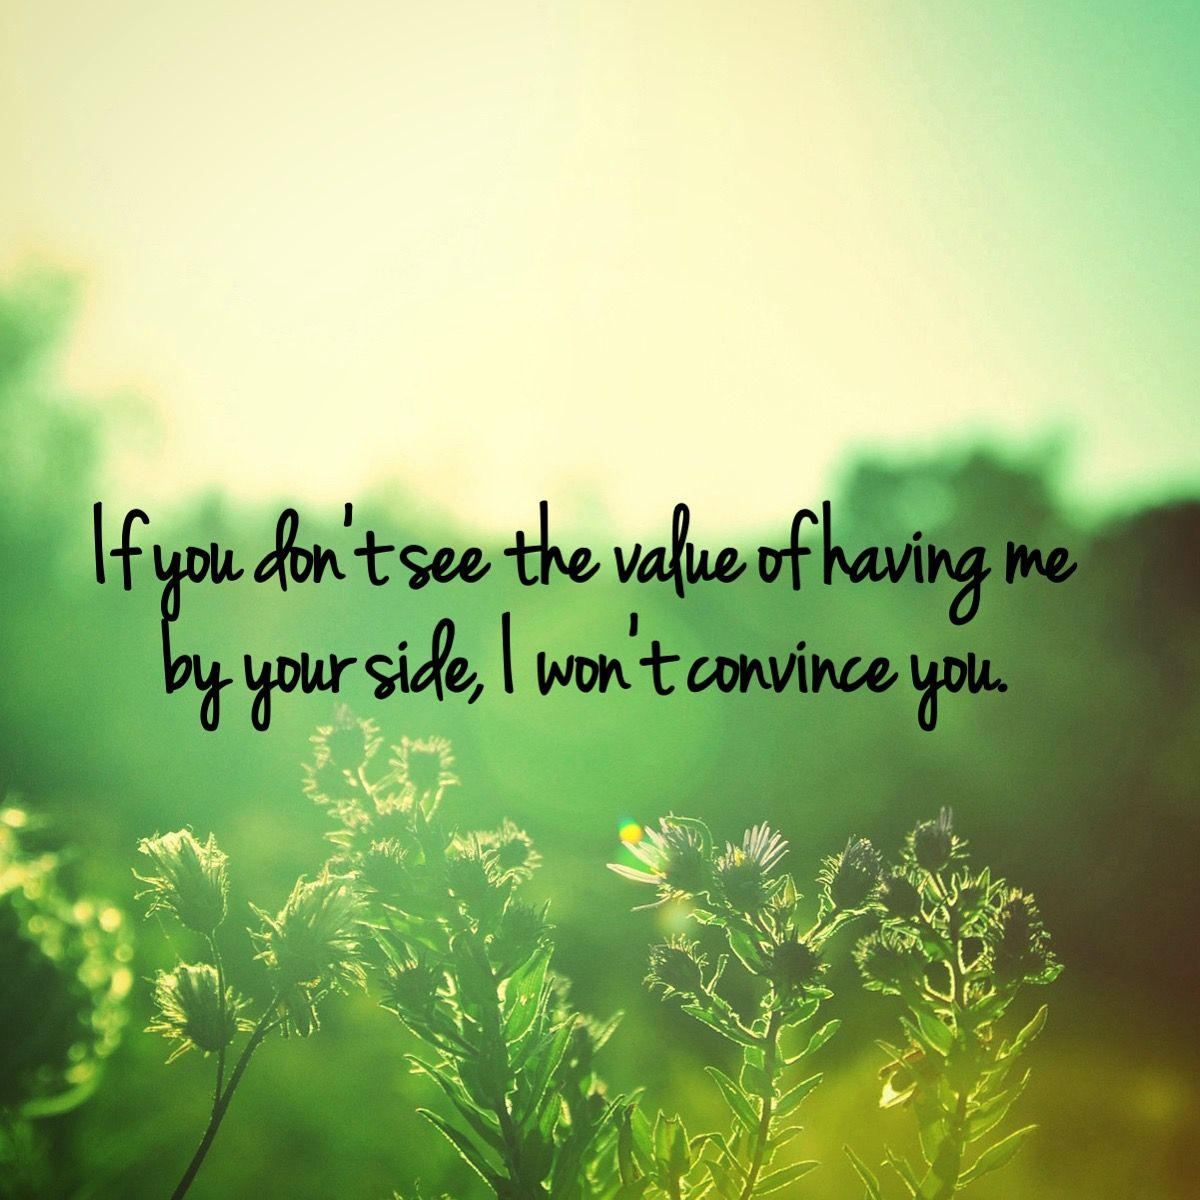 Yes I Will Be More Happy With You By My Side Best Love Quotes Quotes About Love And Relationships Love Quotes For Girlfriend